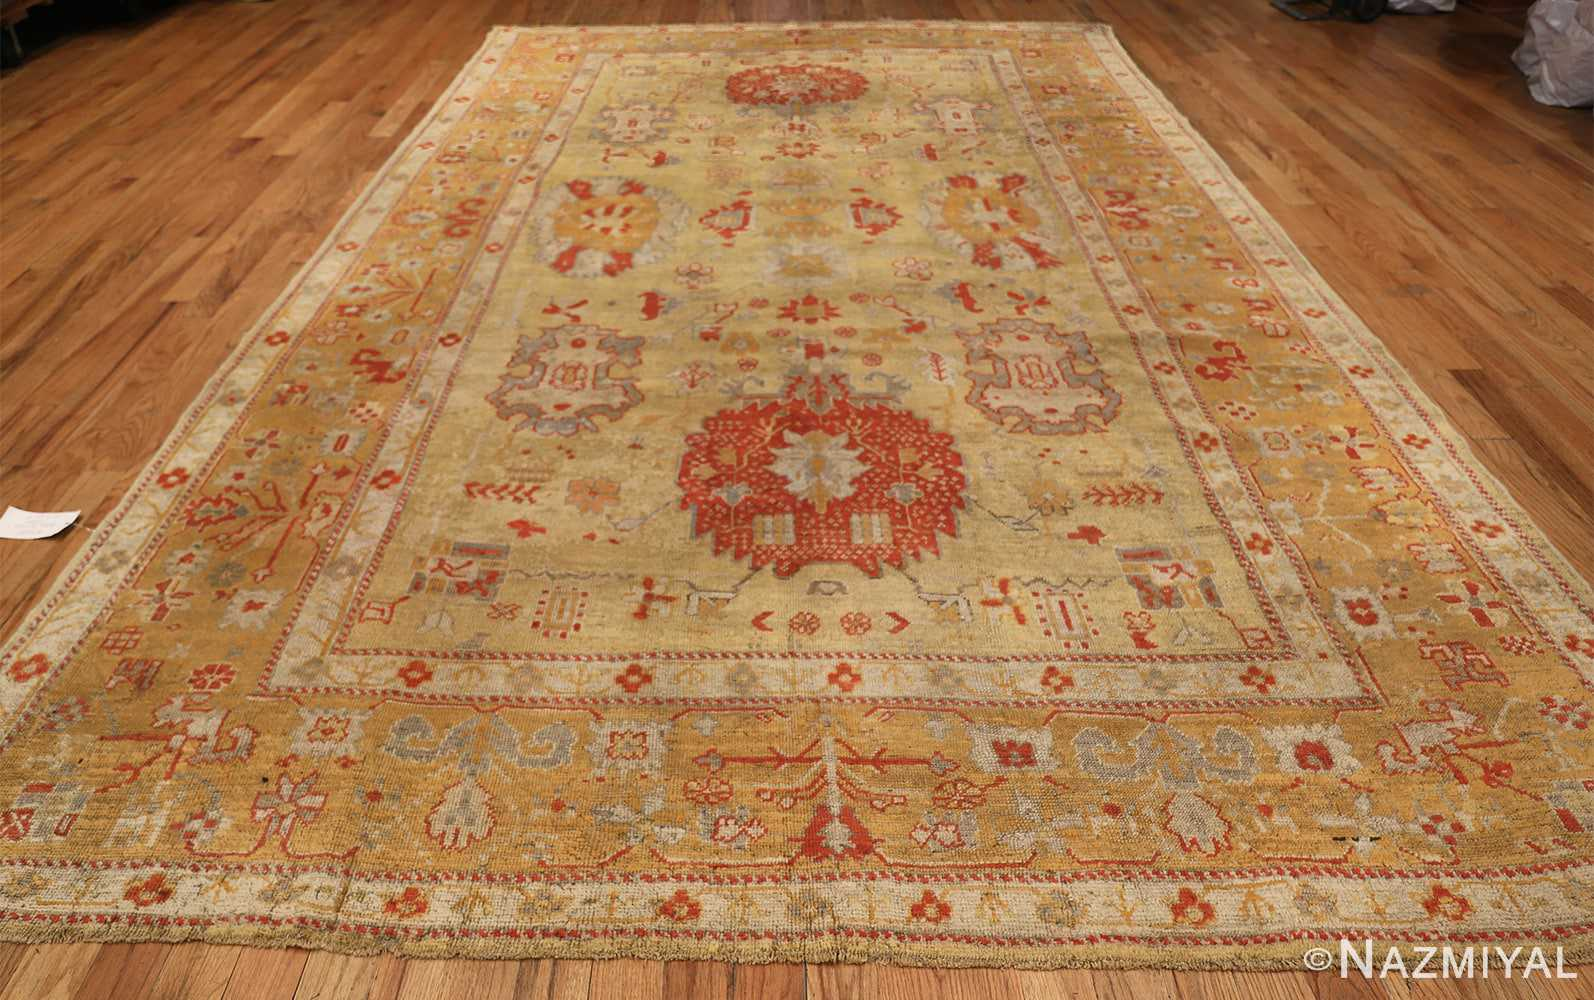 Tribal and Primitive Decorative Antique Turkish Oushak Rug 47260 Whole Design Nazmiyal